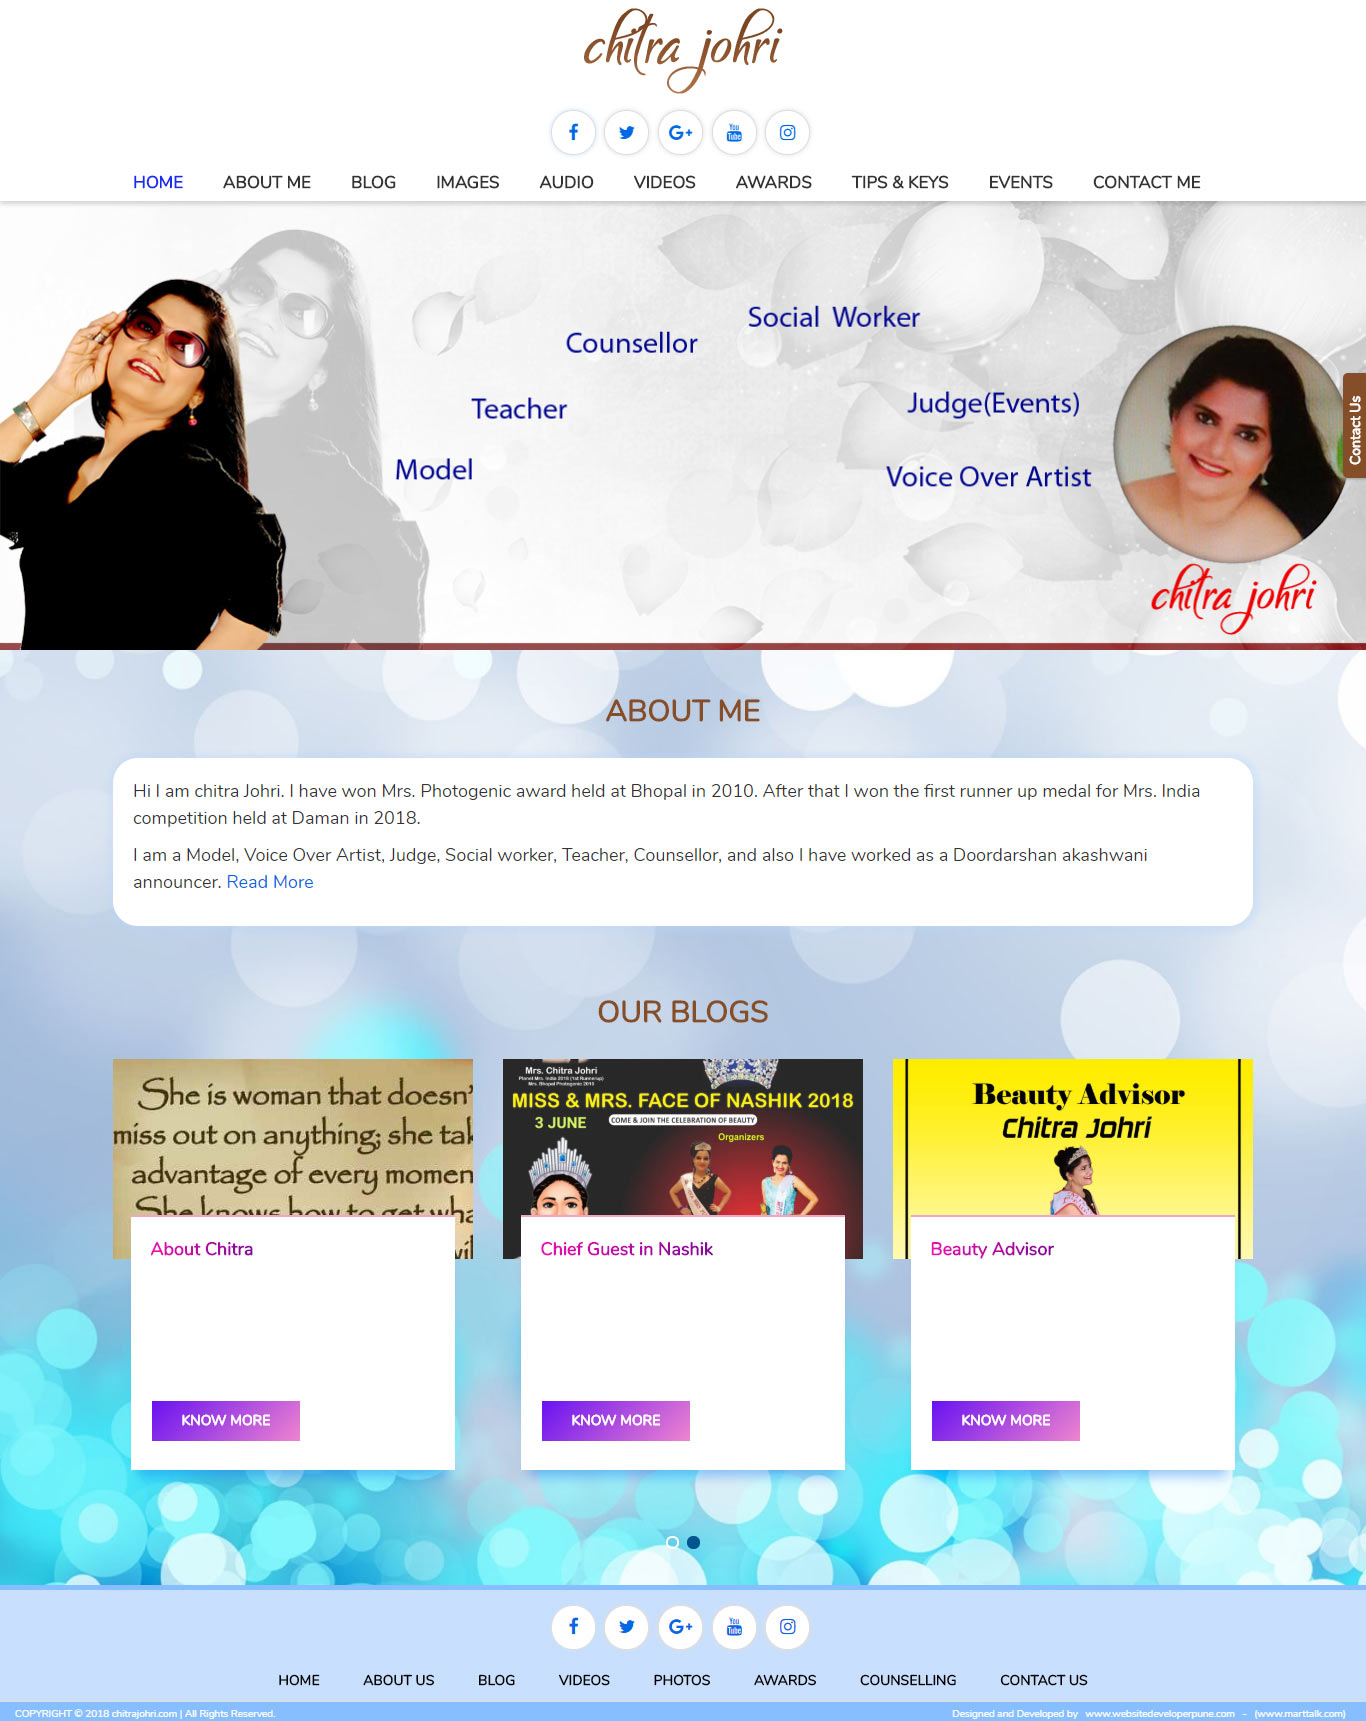 chitrajohri-com-website-developer-pune-portfolio